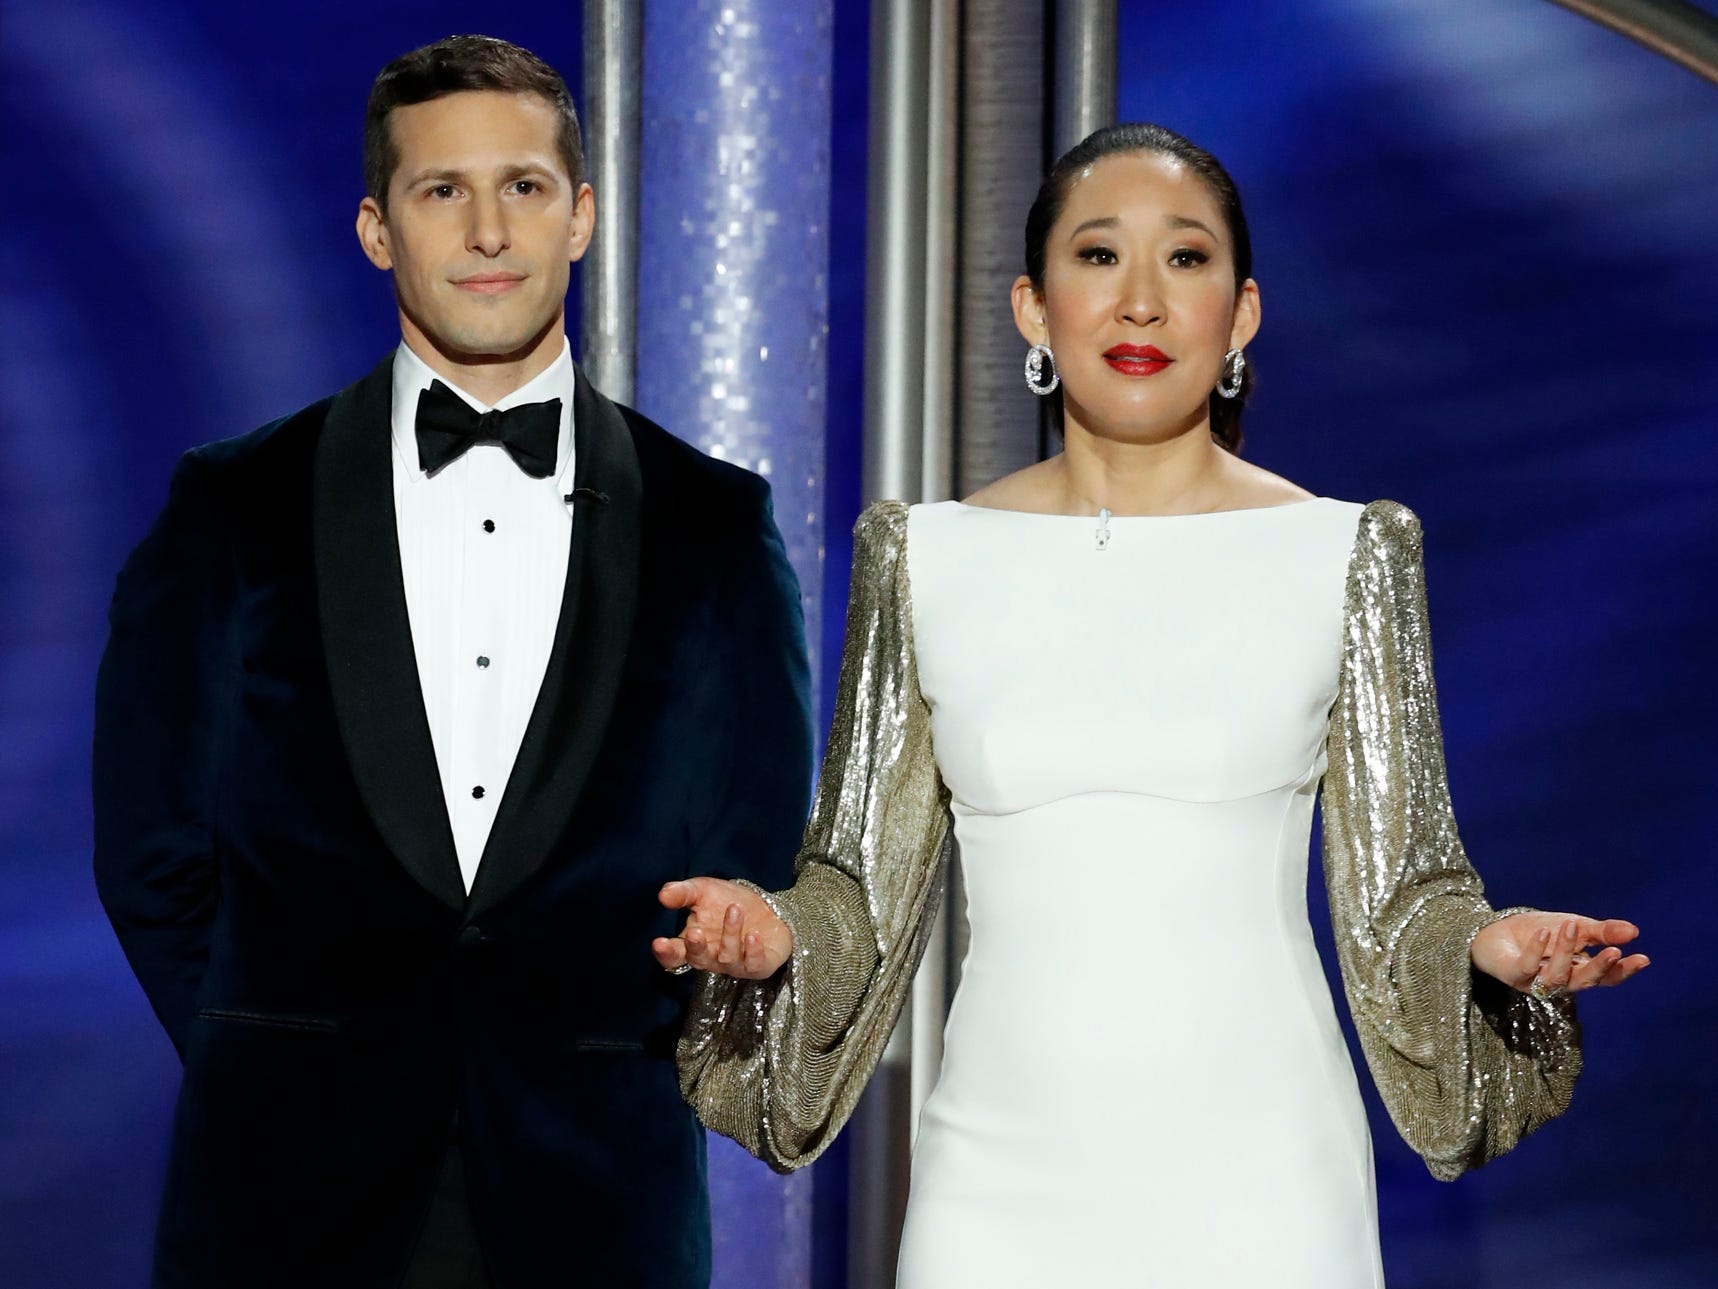 Andy Samberg and Sandra Oh speak on stage during the 76th Golden Globe Awards.